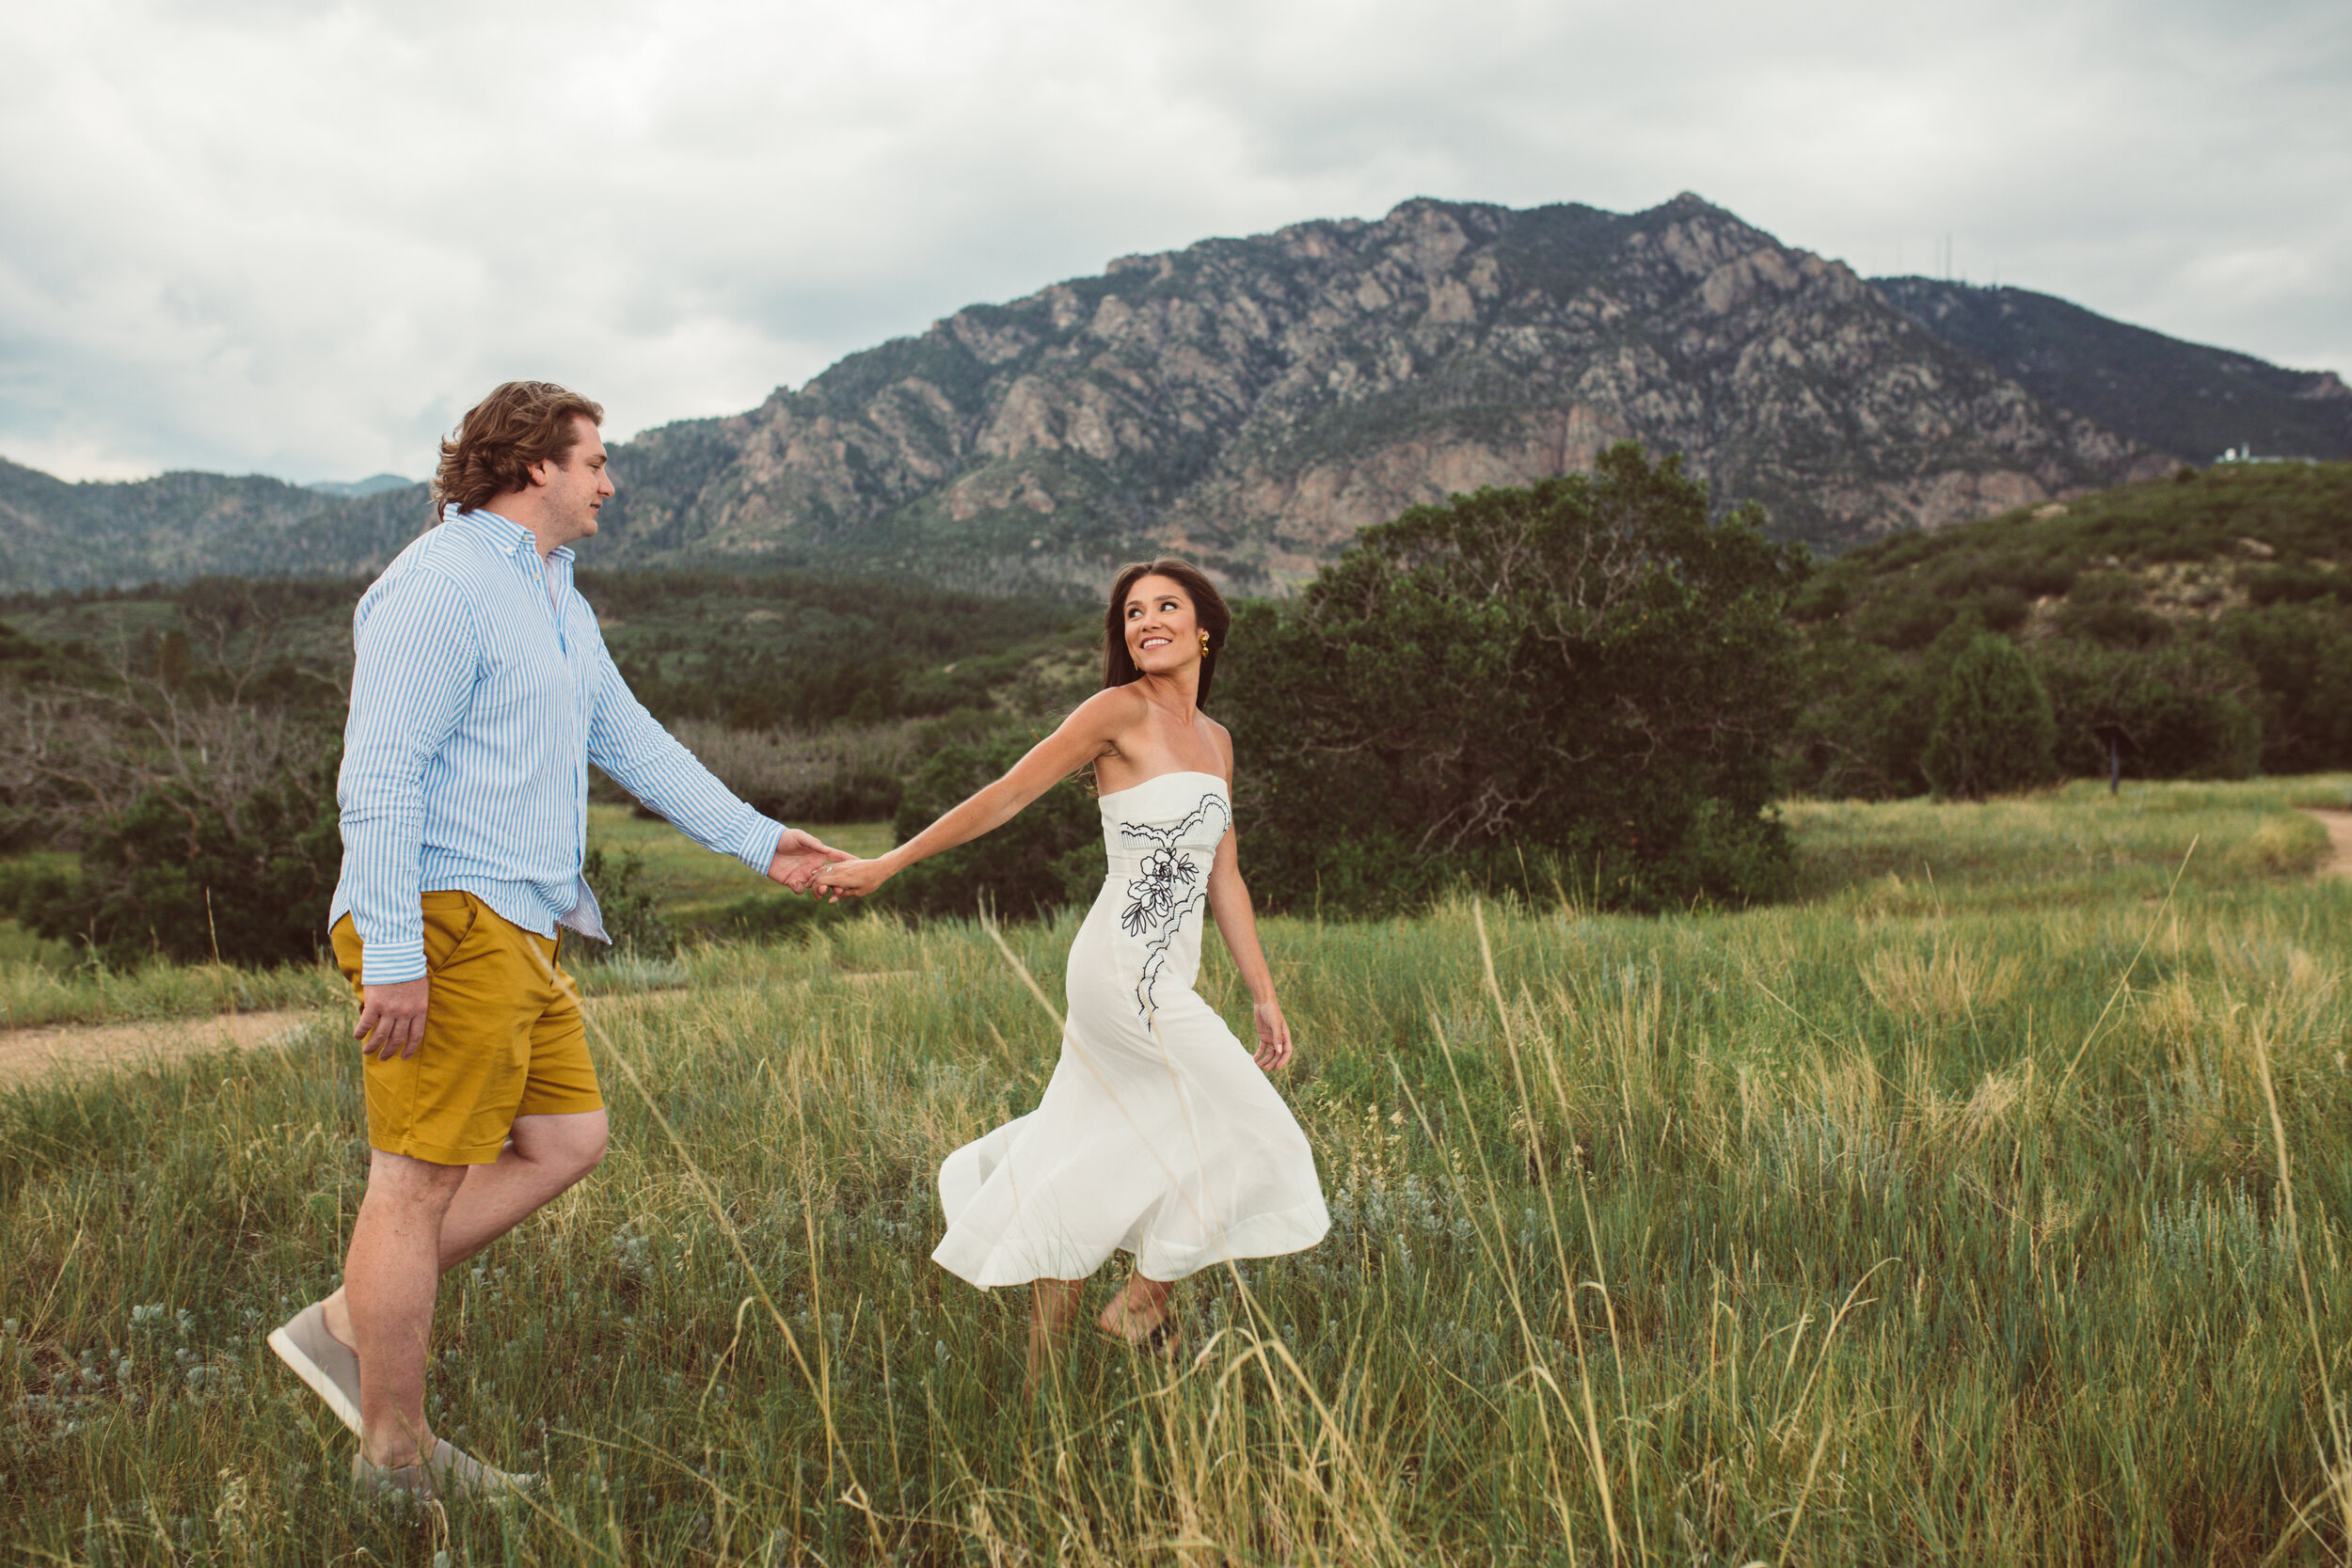 East Coast natives, Jordan and Tyler, recently moved to Colorado Springs and wanted to capture the essence of the new city they live in with  engagement photos  at Cheyenne Mountain State Park.